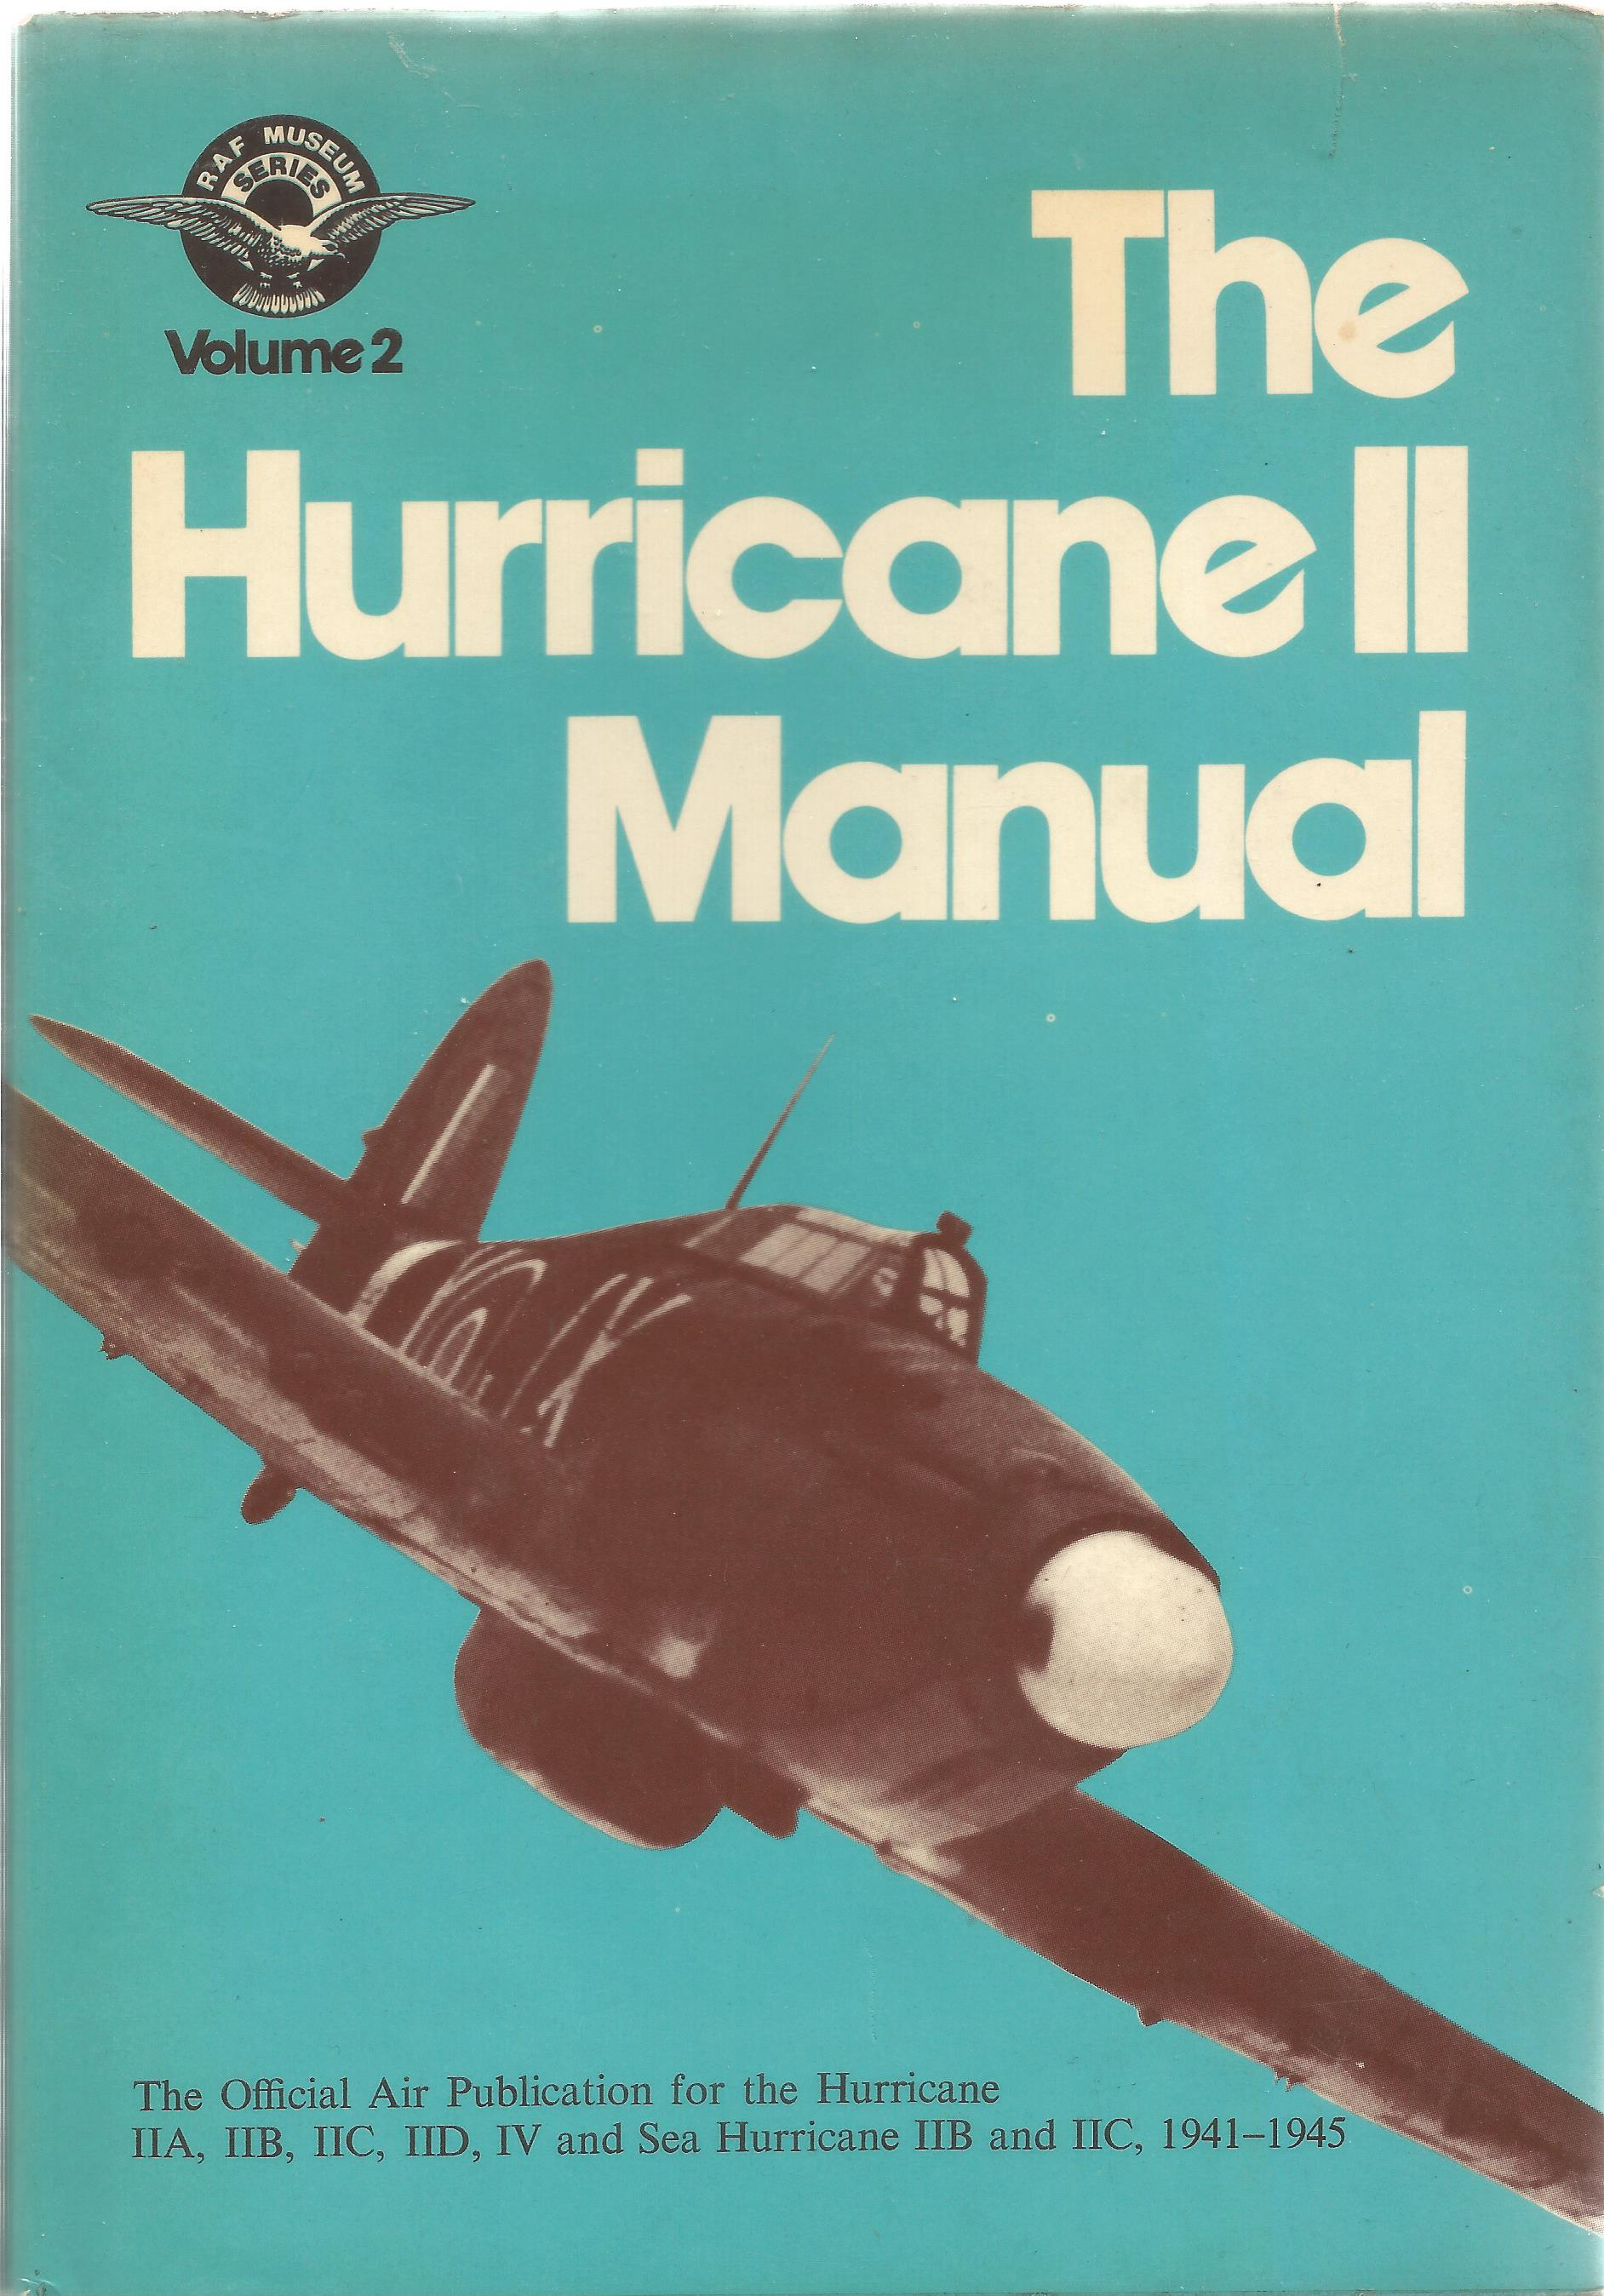 General Editor John Tanner. The Hurricane 2 Manual. The official air publication for the Hurricane